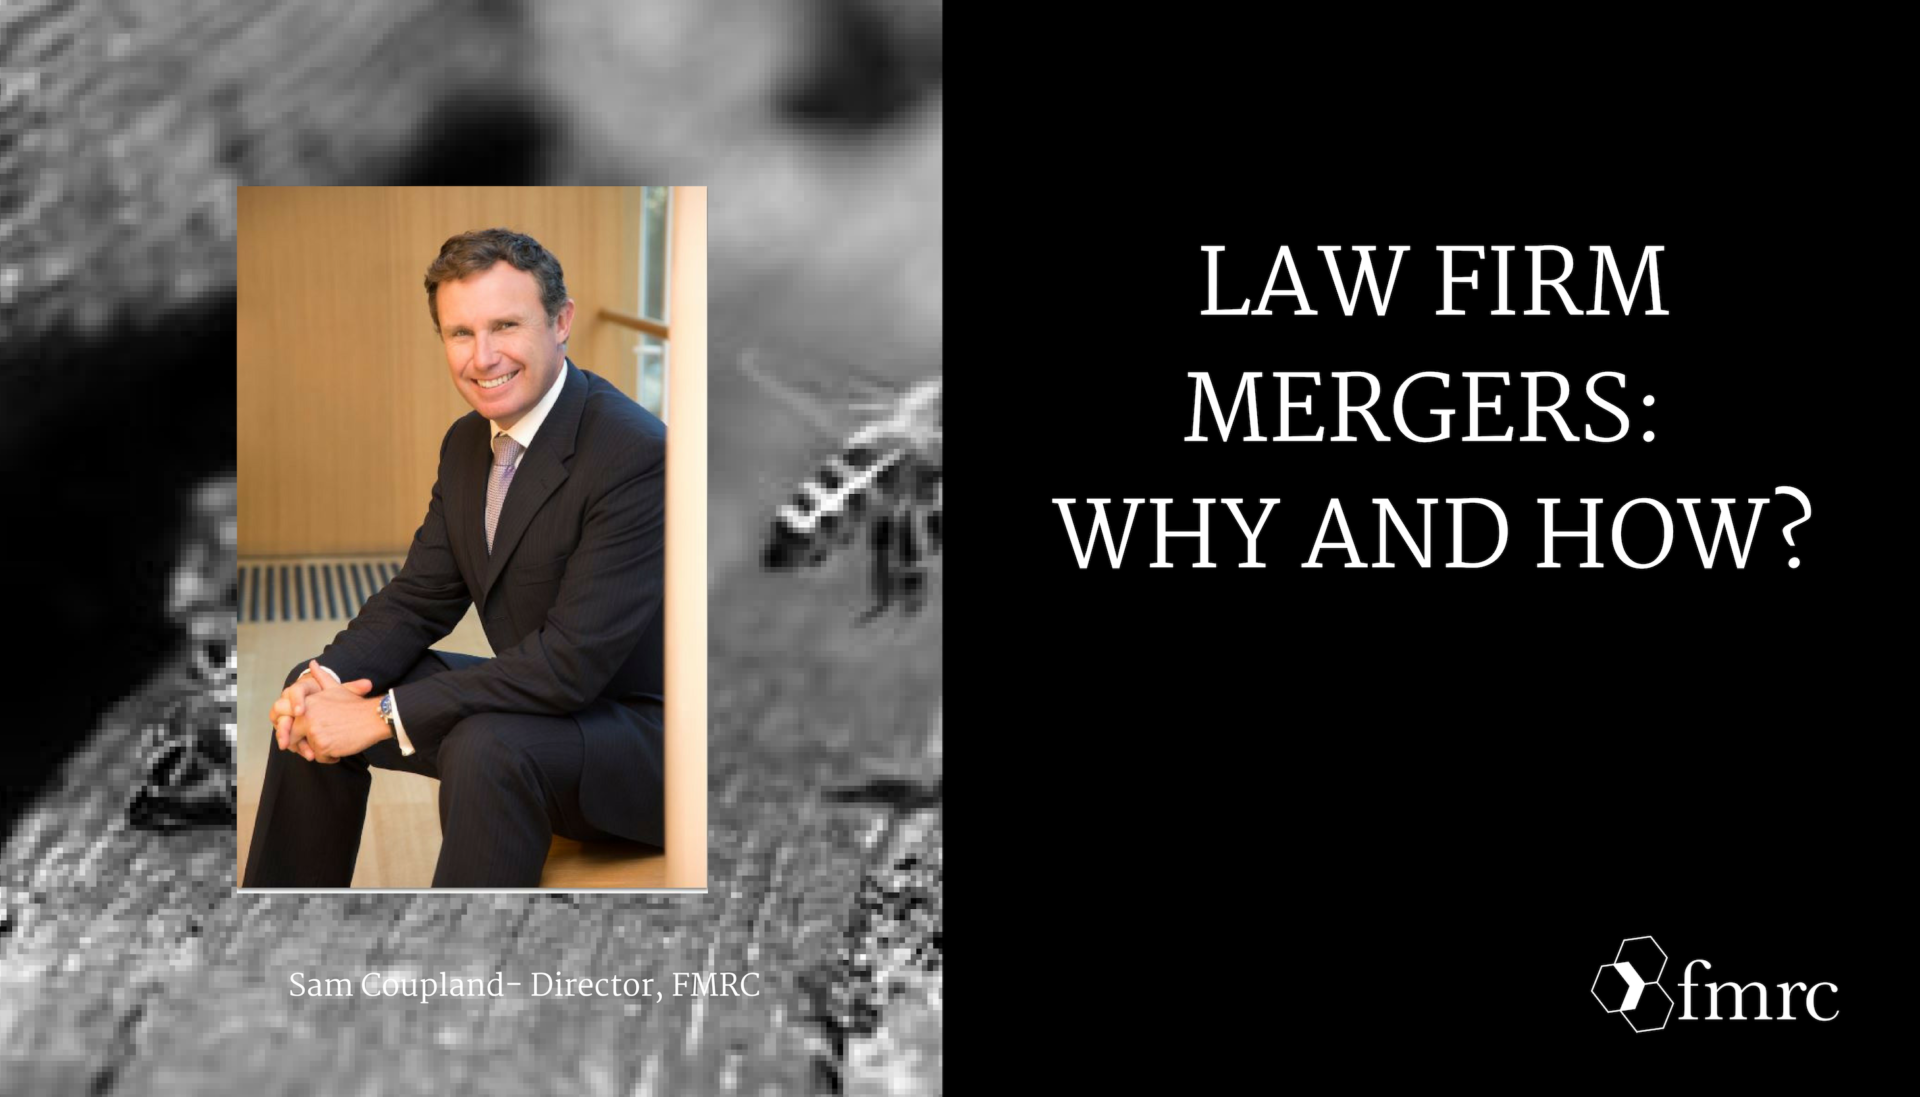 Law Firm Mergers: Why and How?